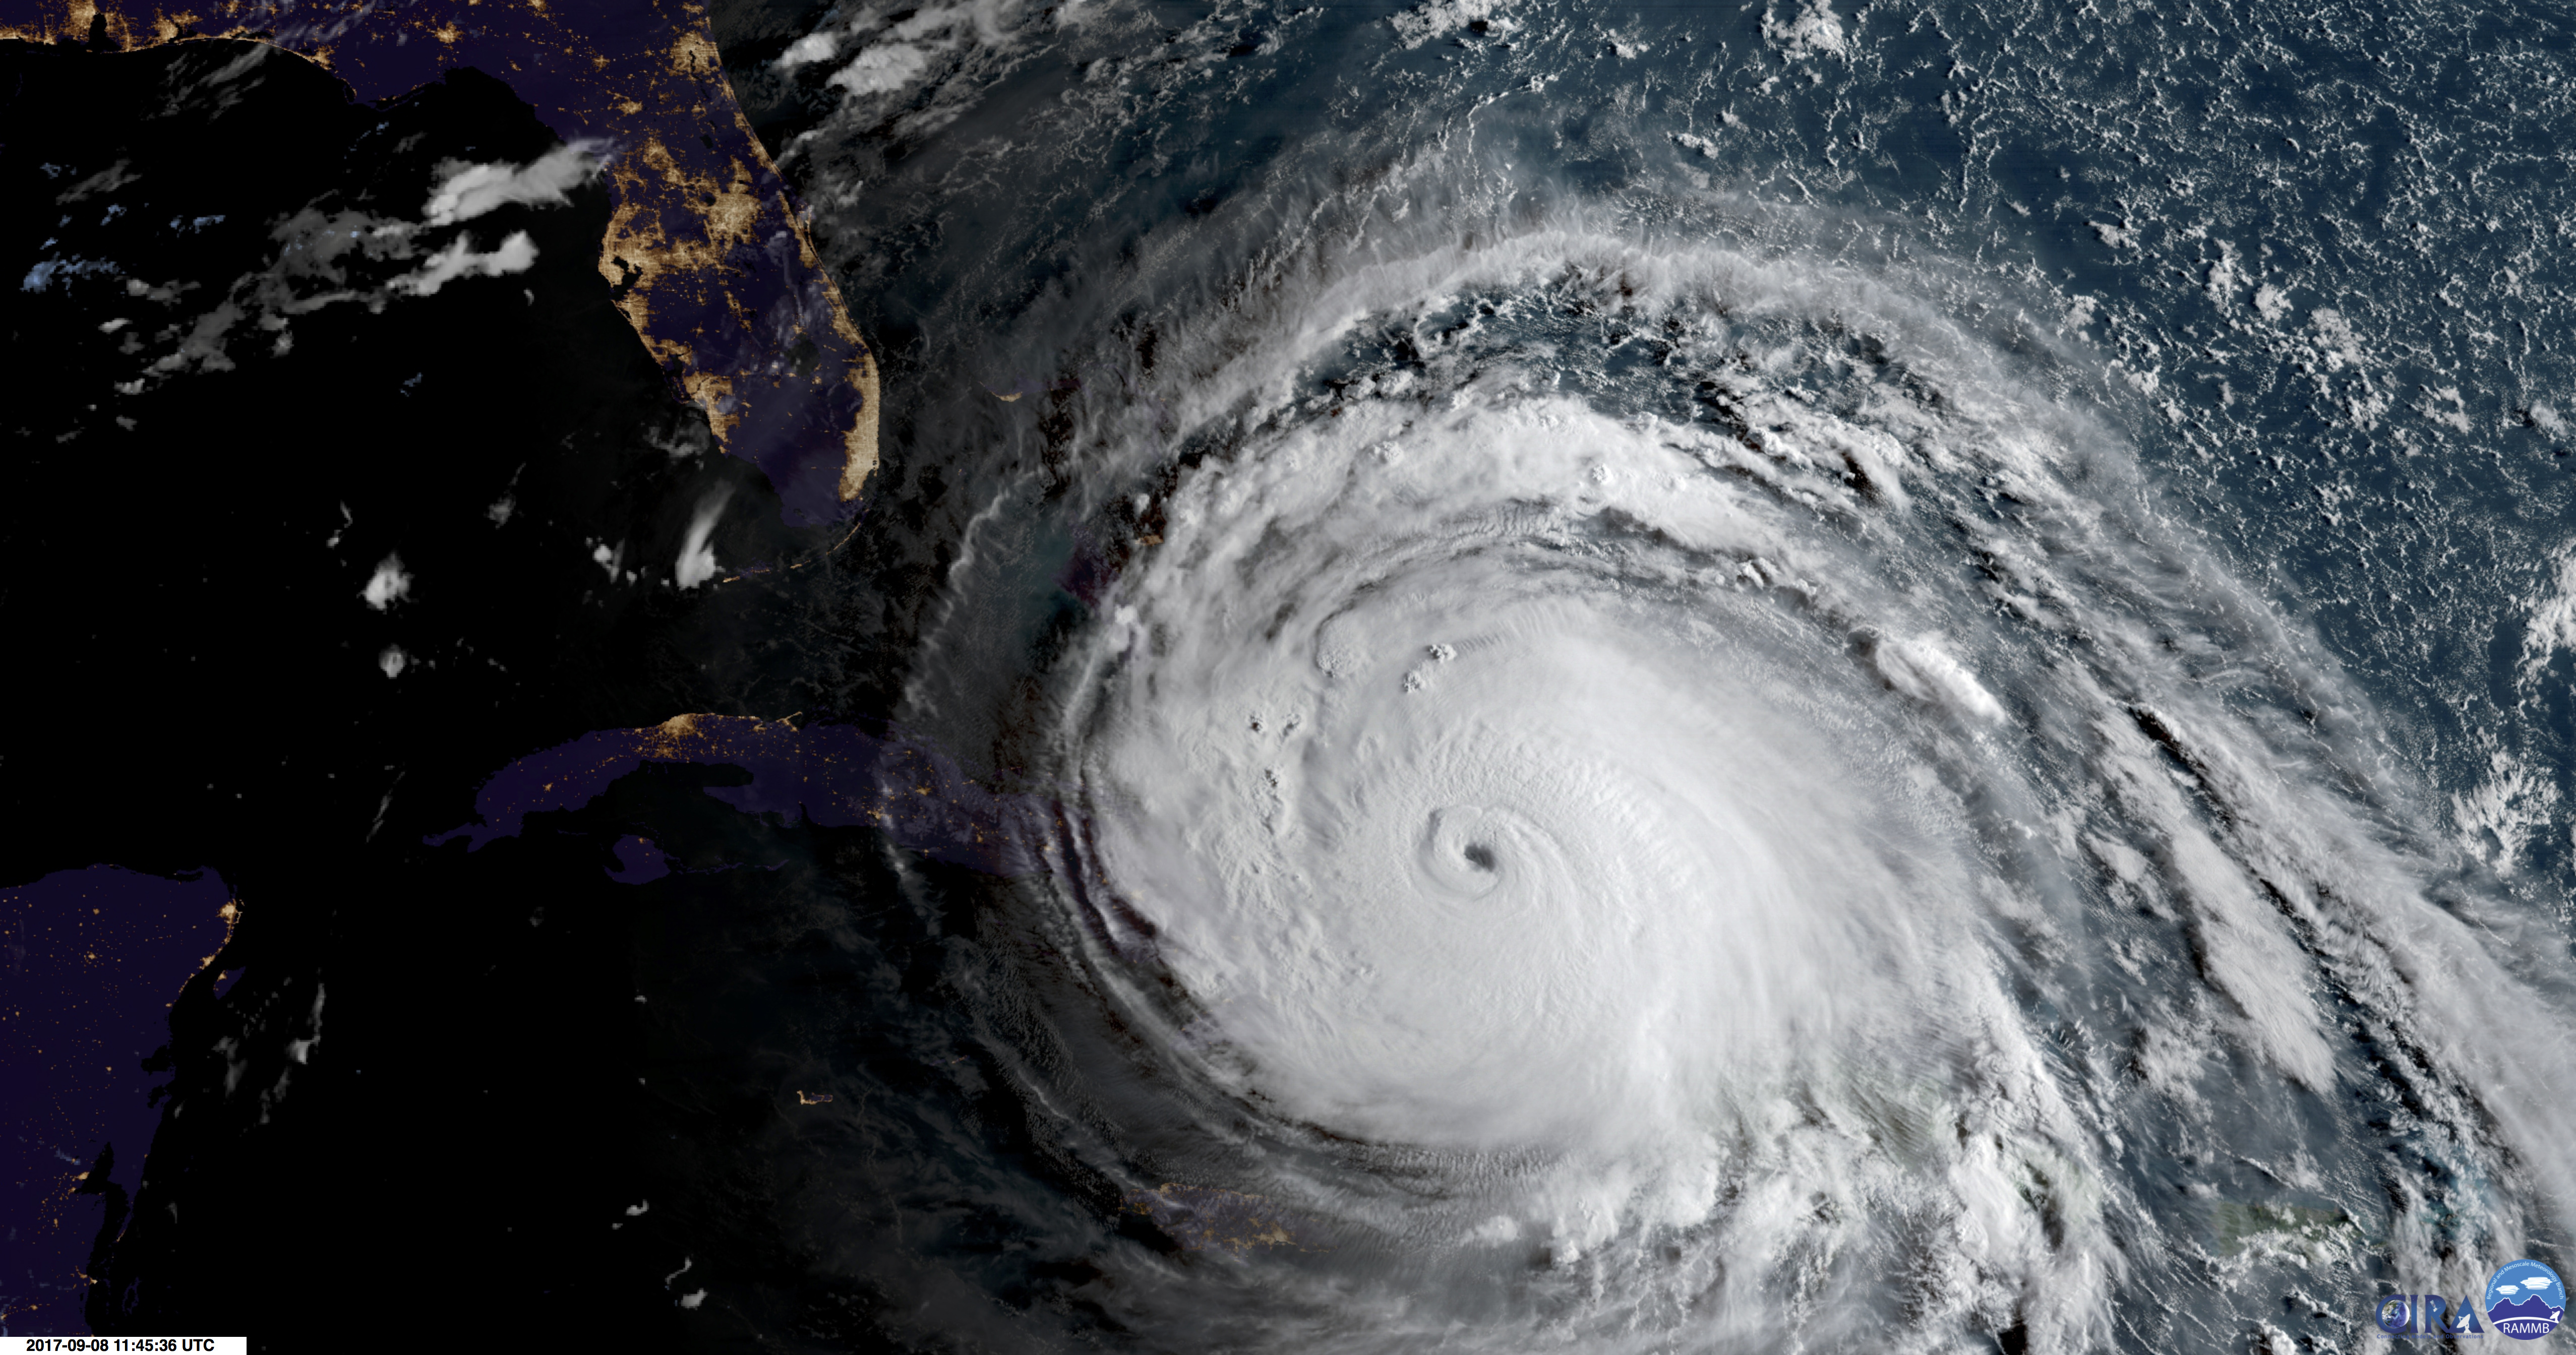 Satellite image of Hurricane Irma on Sept. 8, 2017.